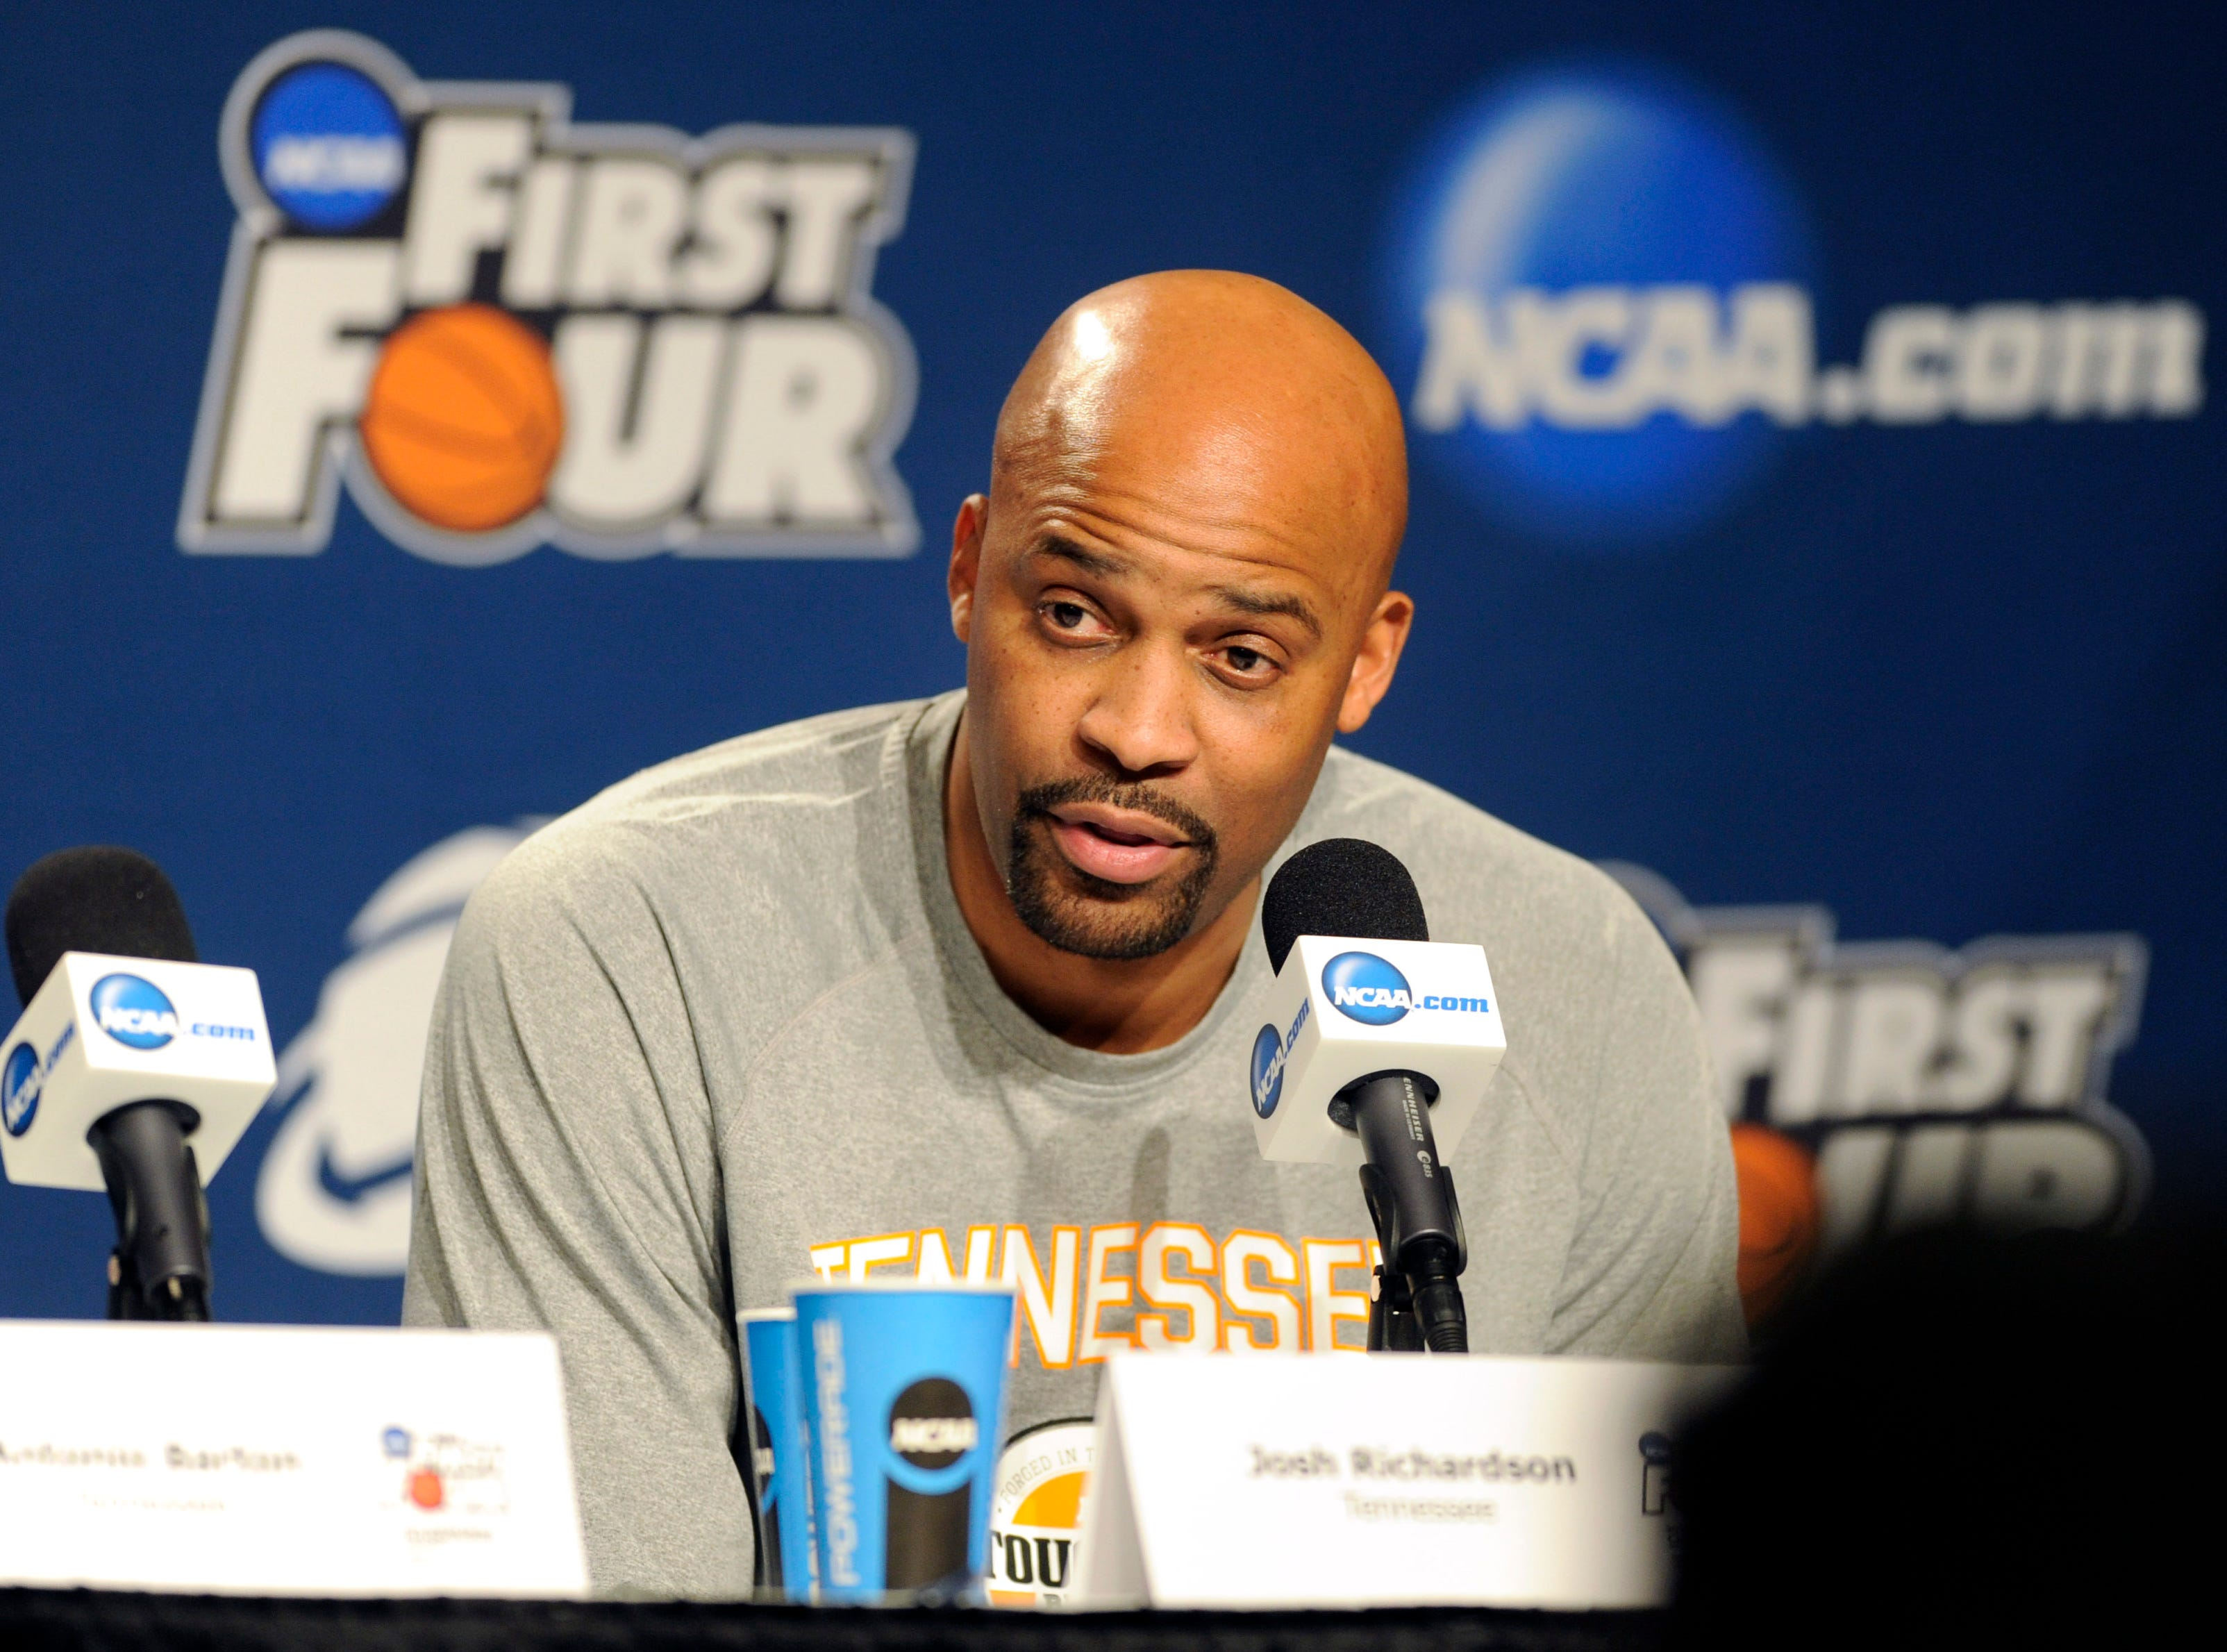 Tennessee head coach Cuonzo Martin answers questions during a press conference before the team's NCAA tournament first round game against Iowa at the University of Dayton Arena in Dayton, Ohio on Tuesday, March 18, 2014.